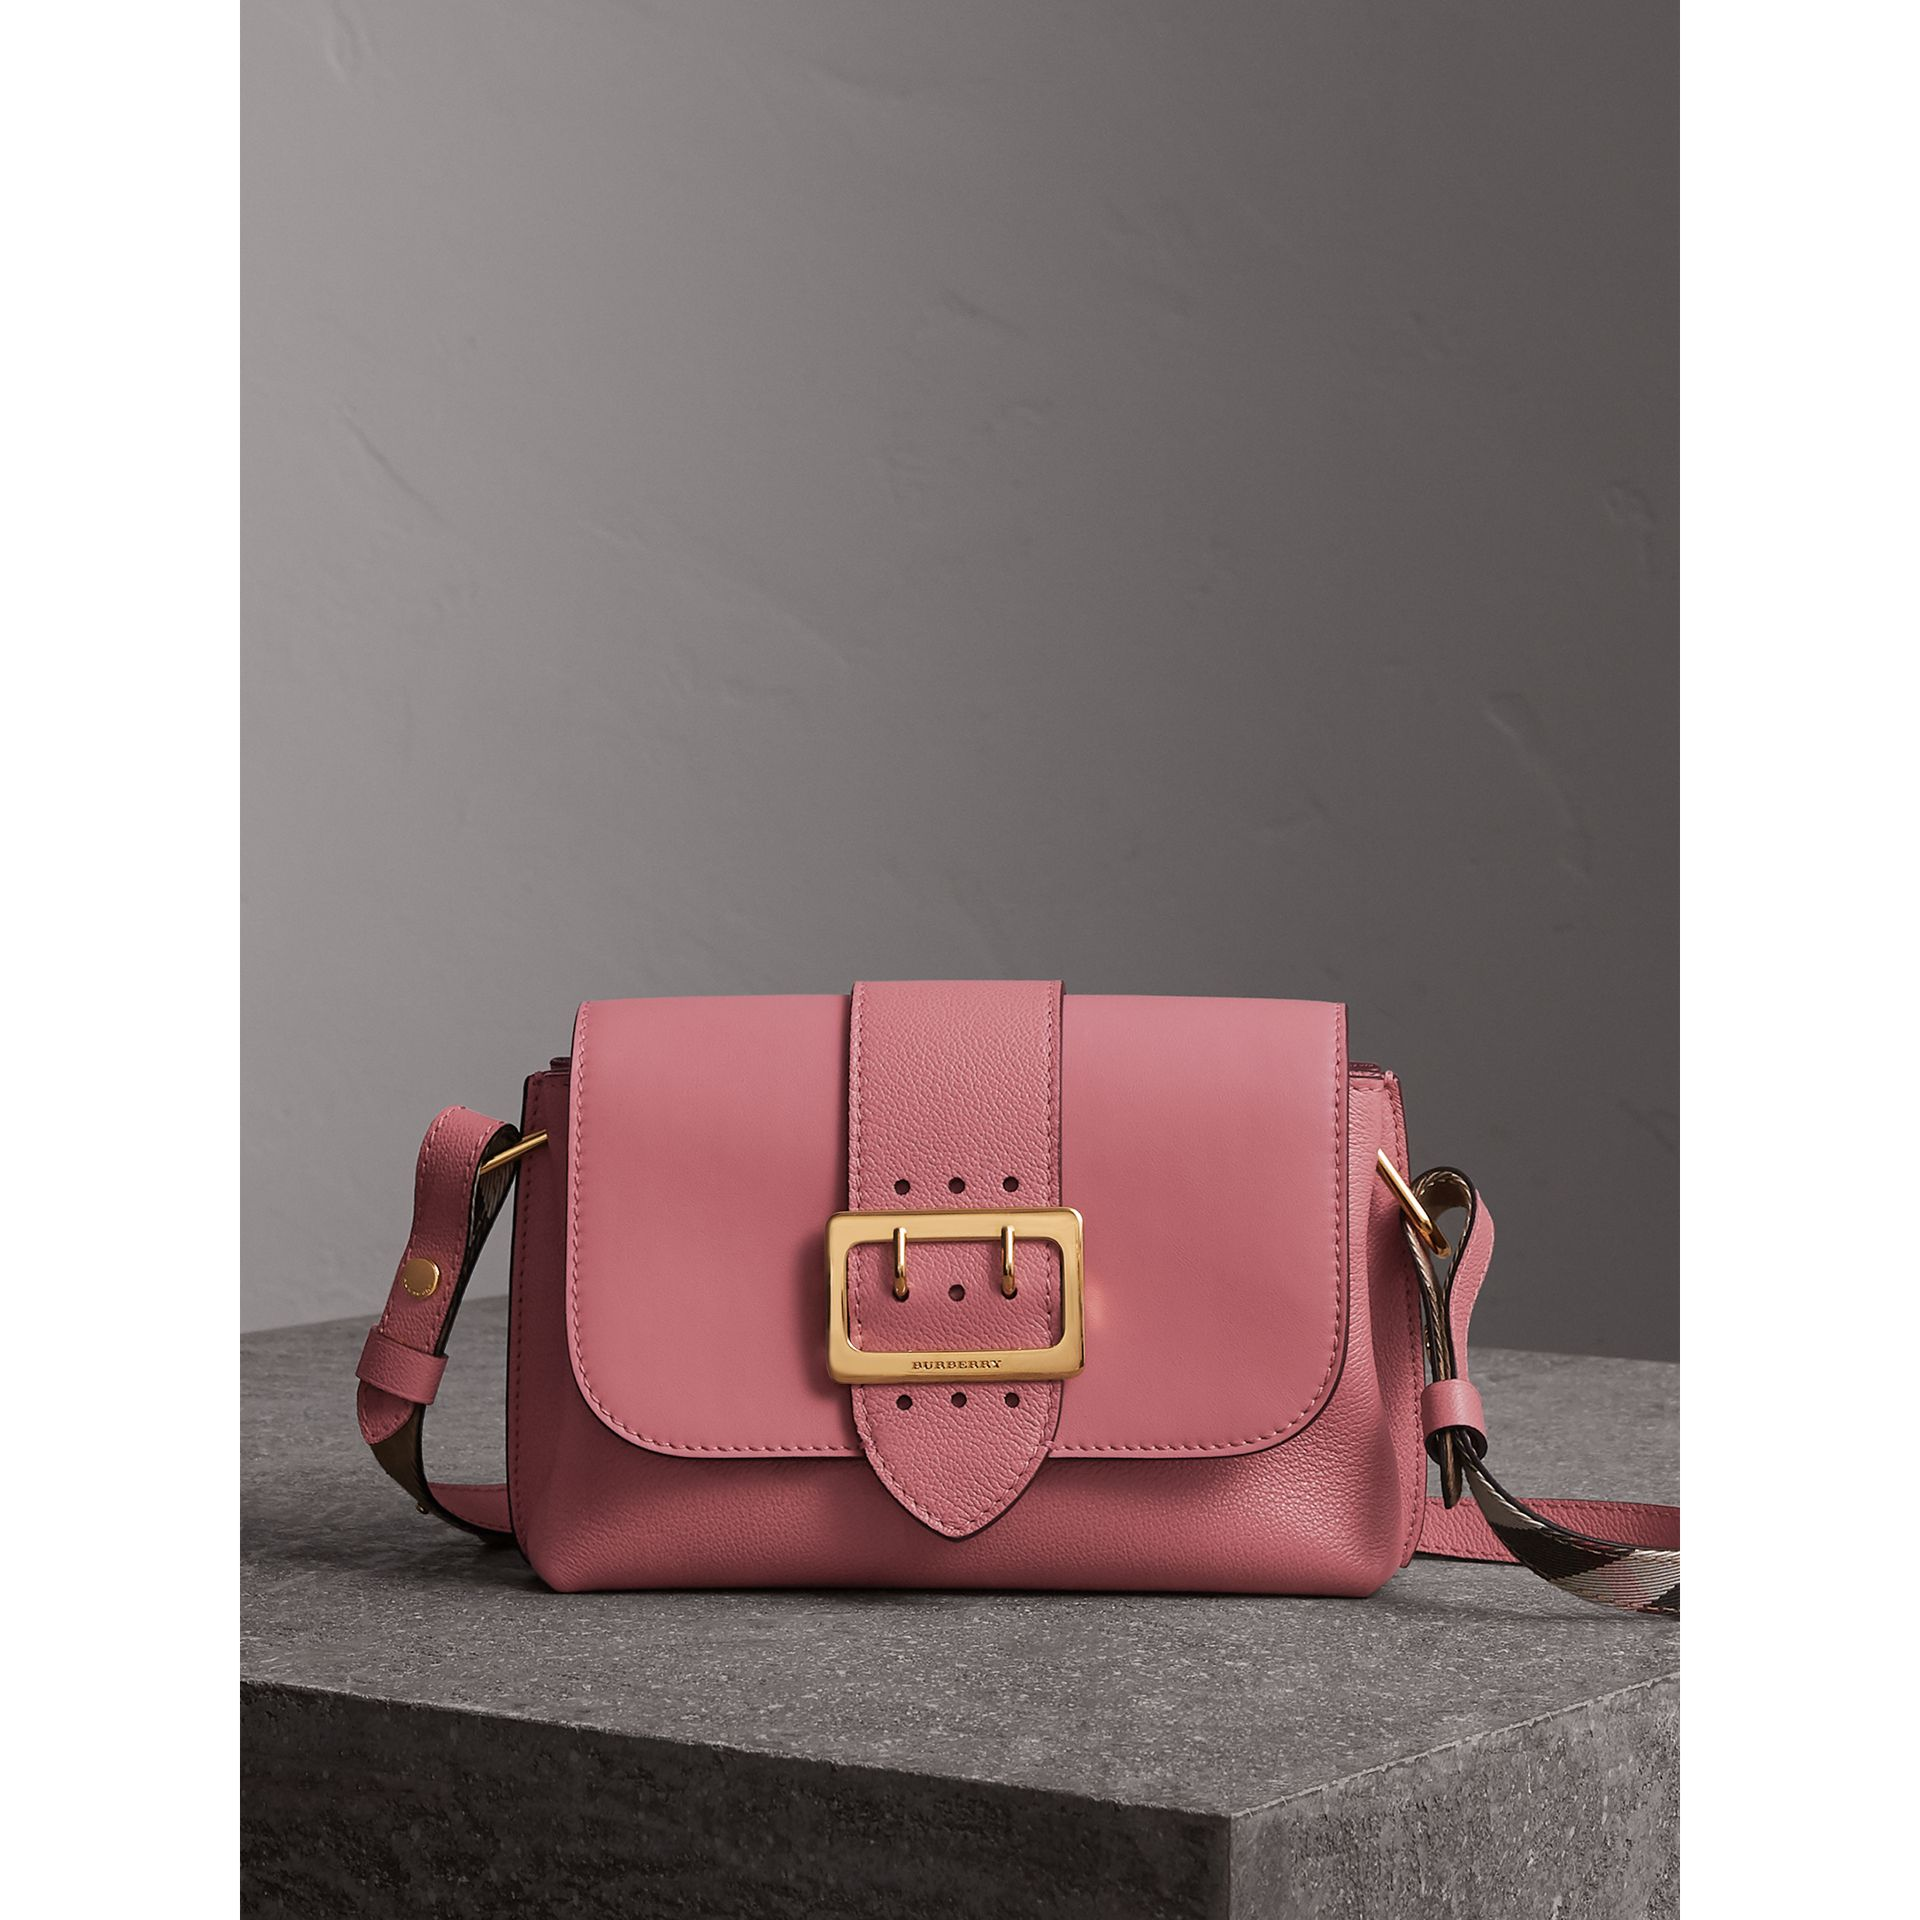 The Buckle Crossbody Bag in Leather in Dusty Pink - Women | Burberry Singapore - gallery image 1